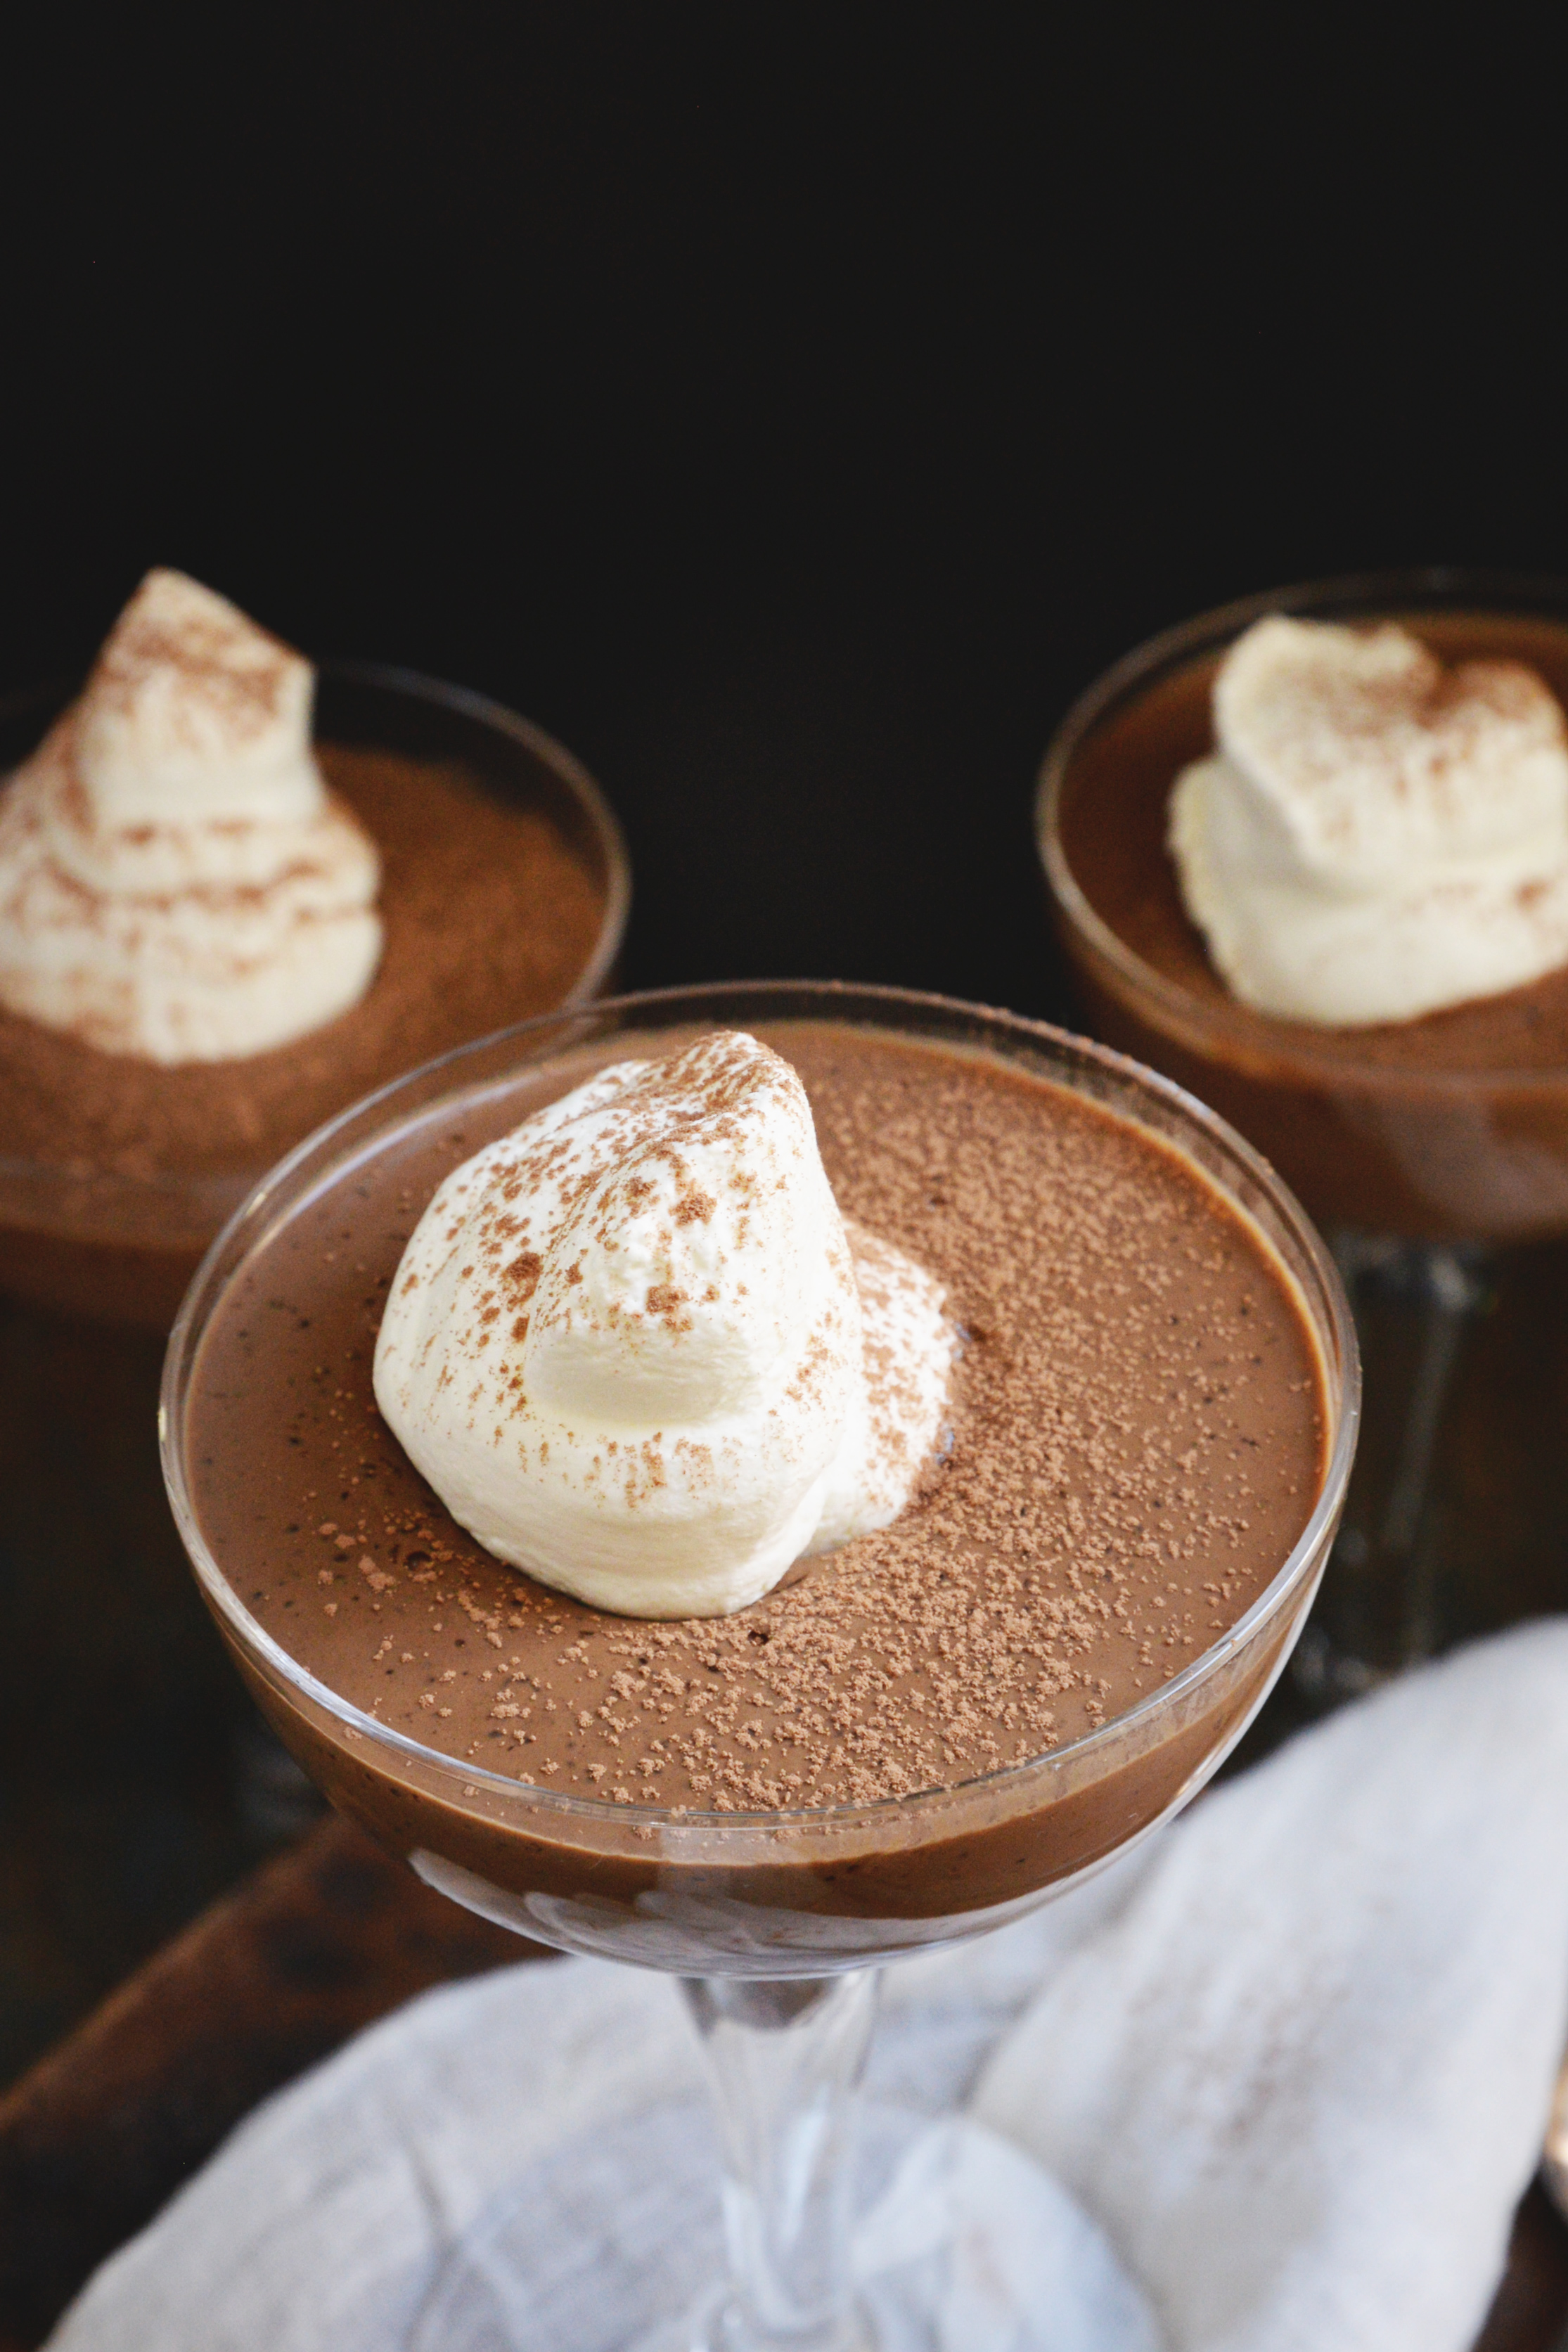 Low-Carb Chocolate Pudding Recipe-Top view of garnished pudding